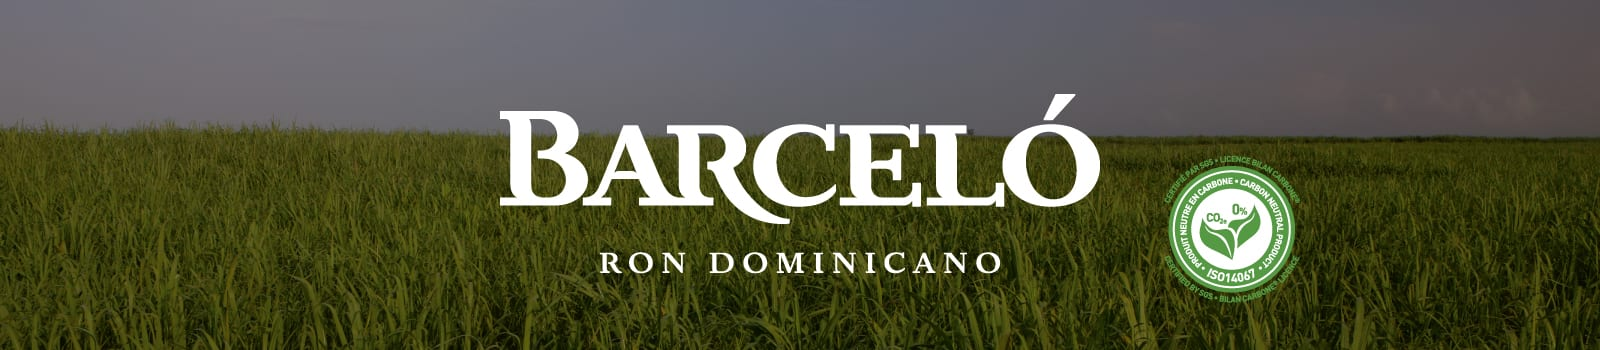 Barcelo Rum, Trajectory Beverage Partners